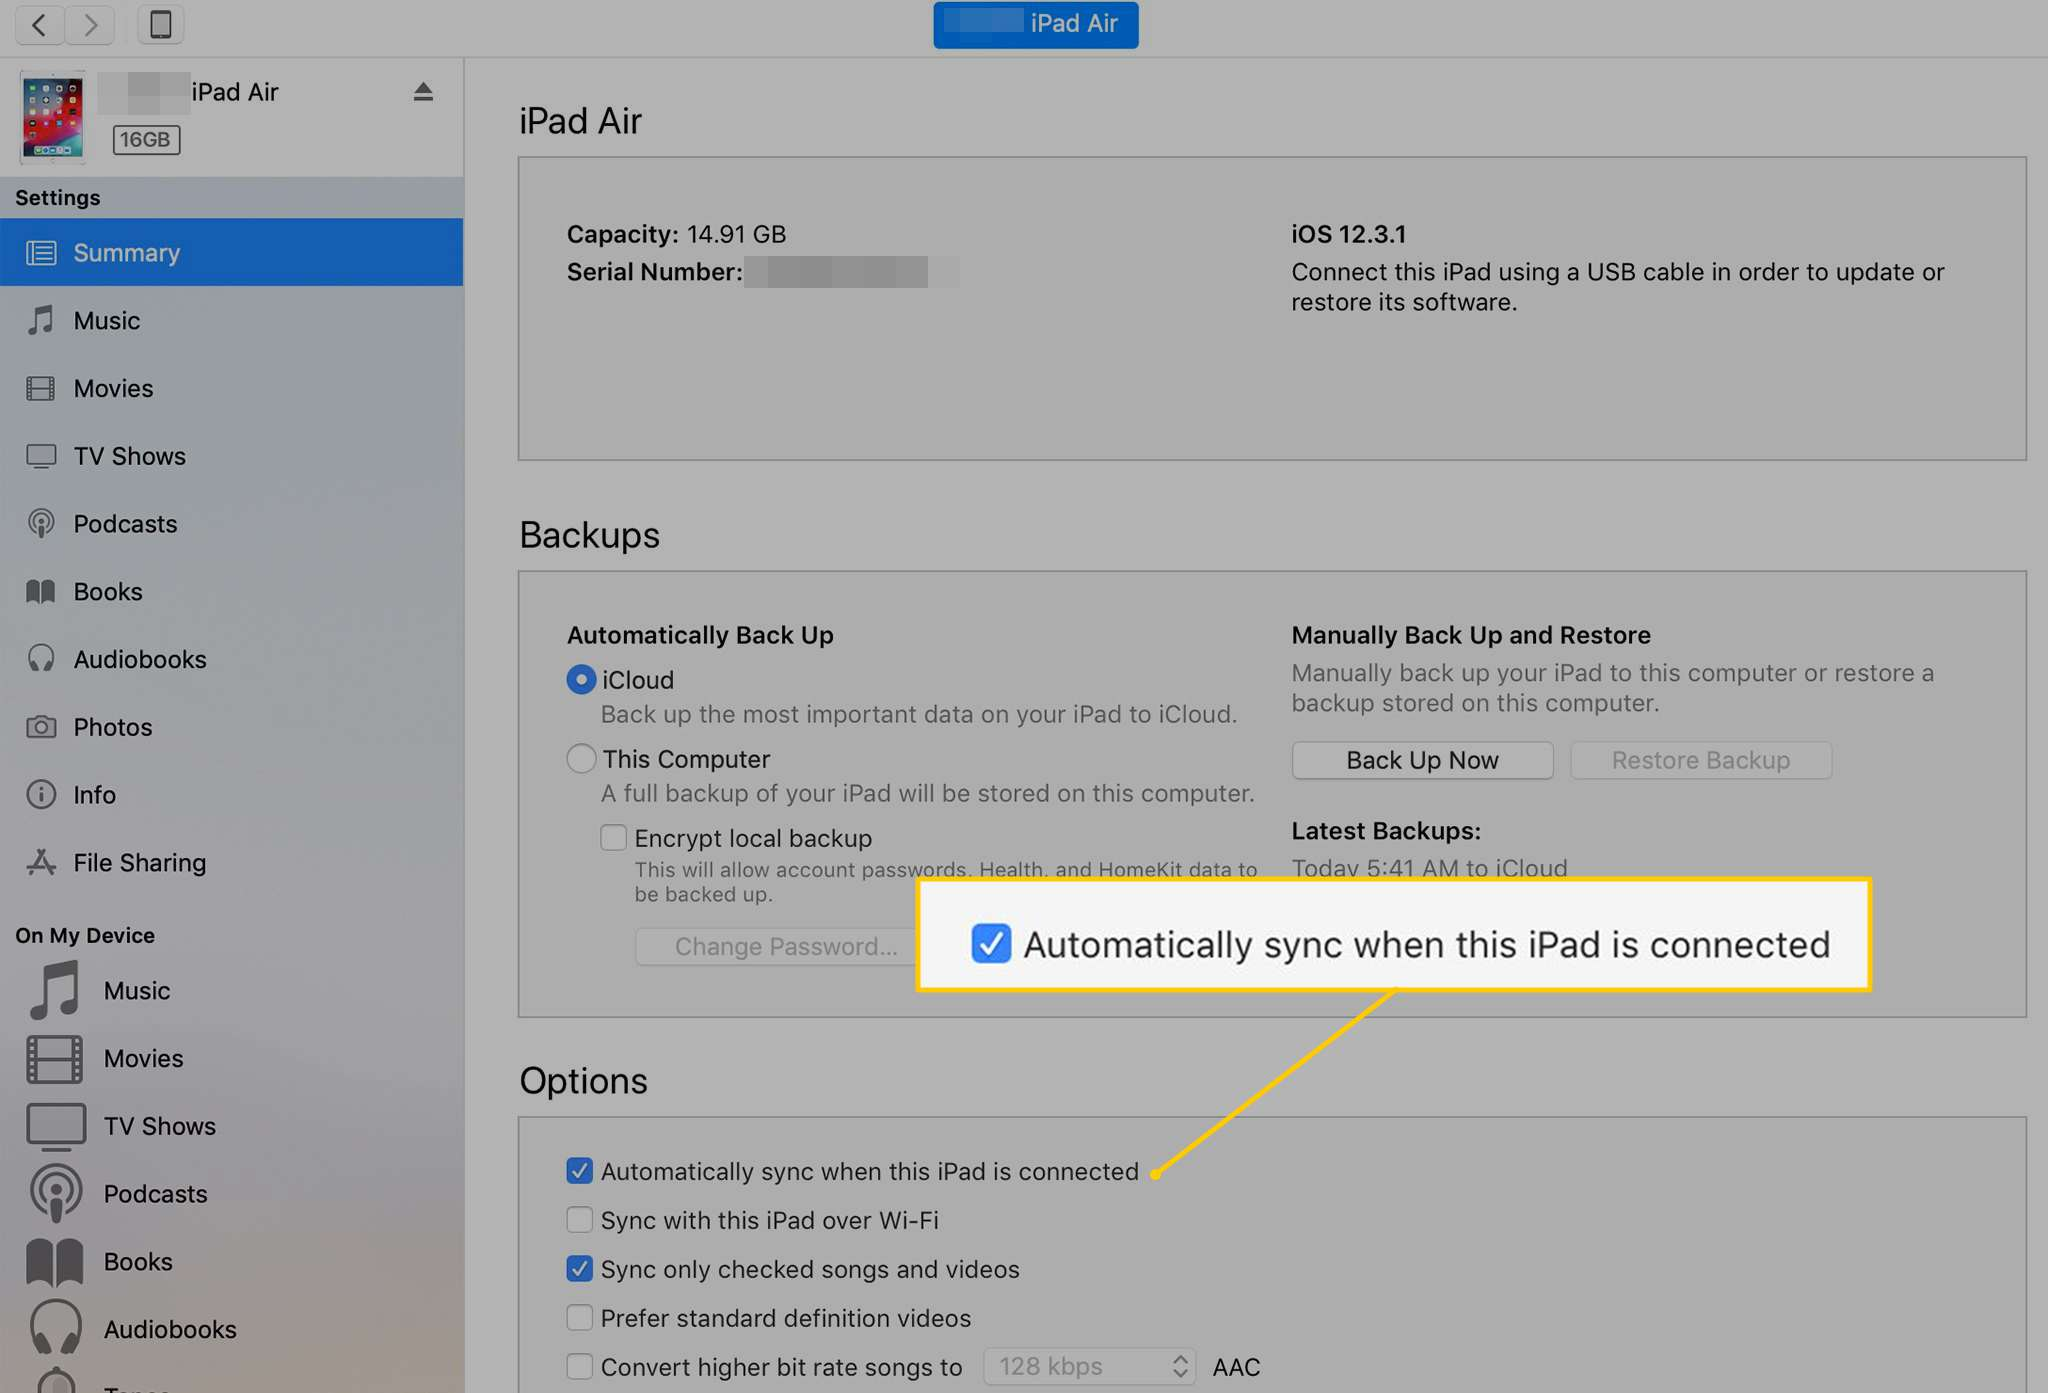 Automatically sync when this iPad is connected checkbox in iTunes